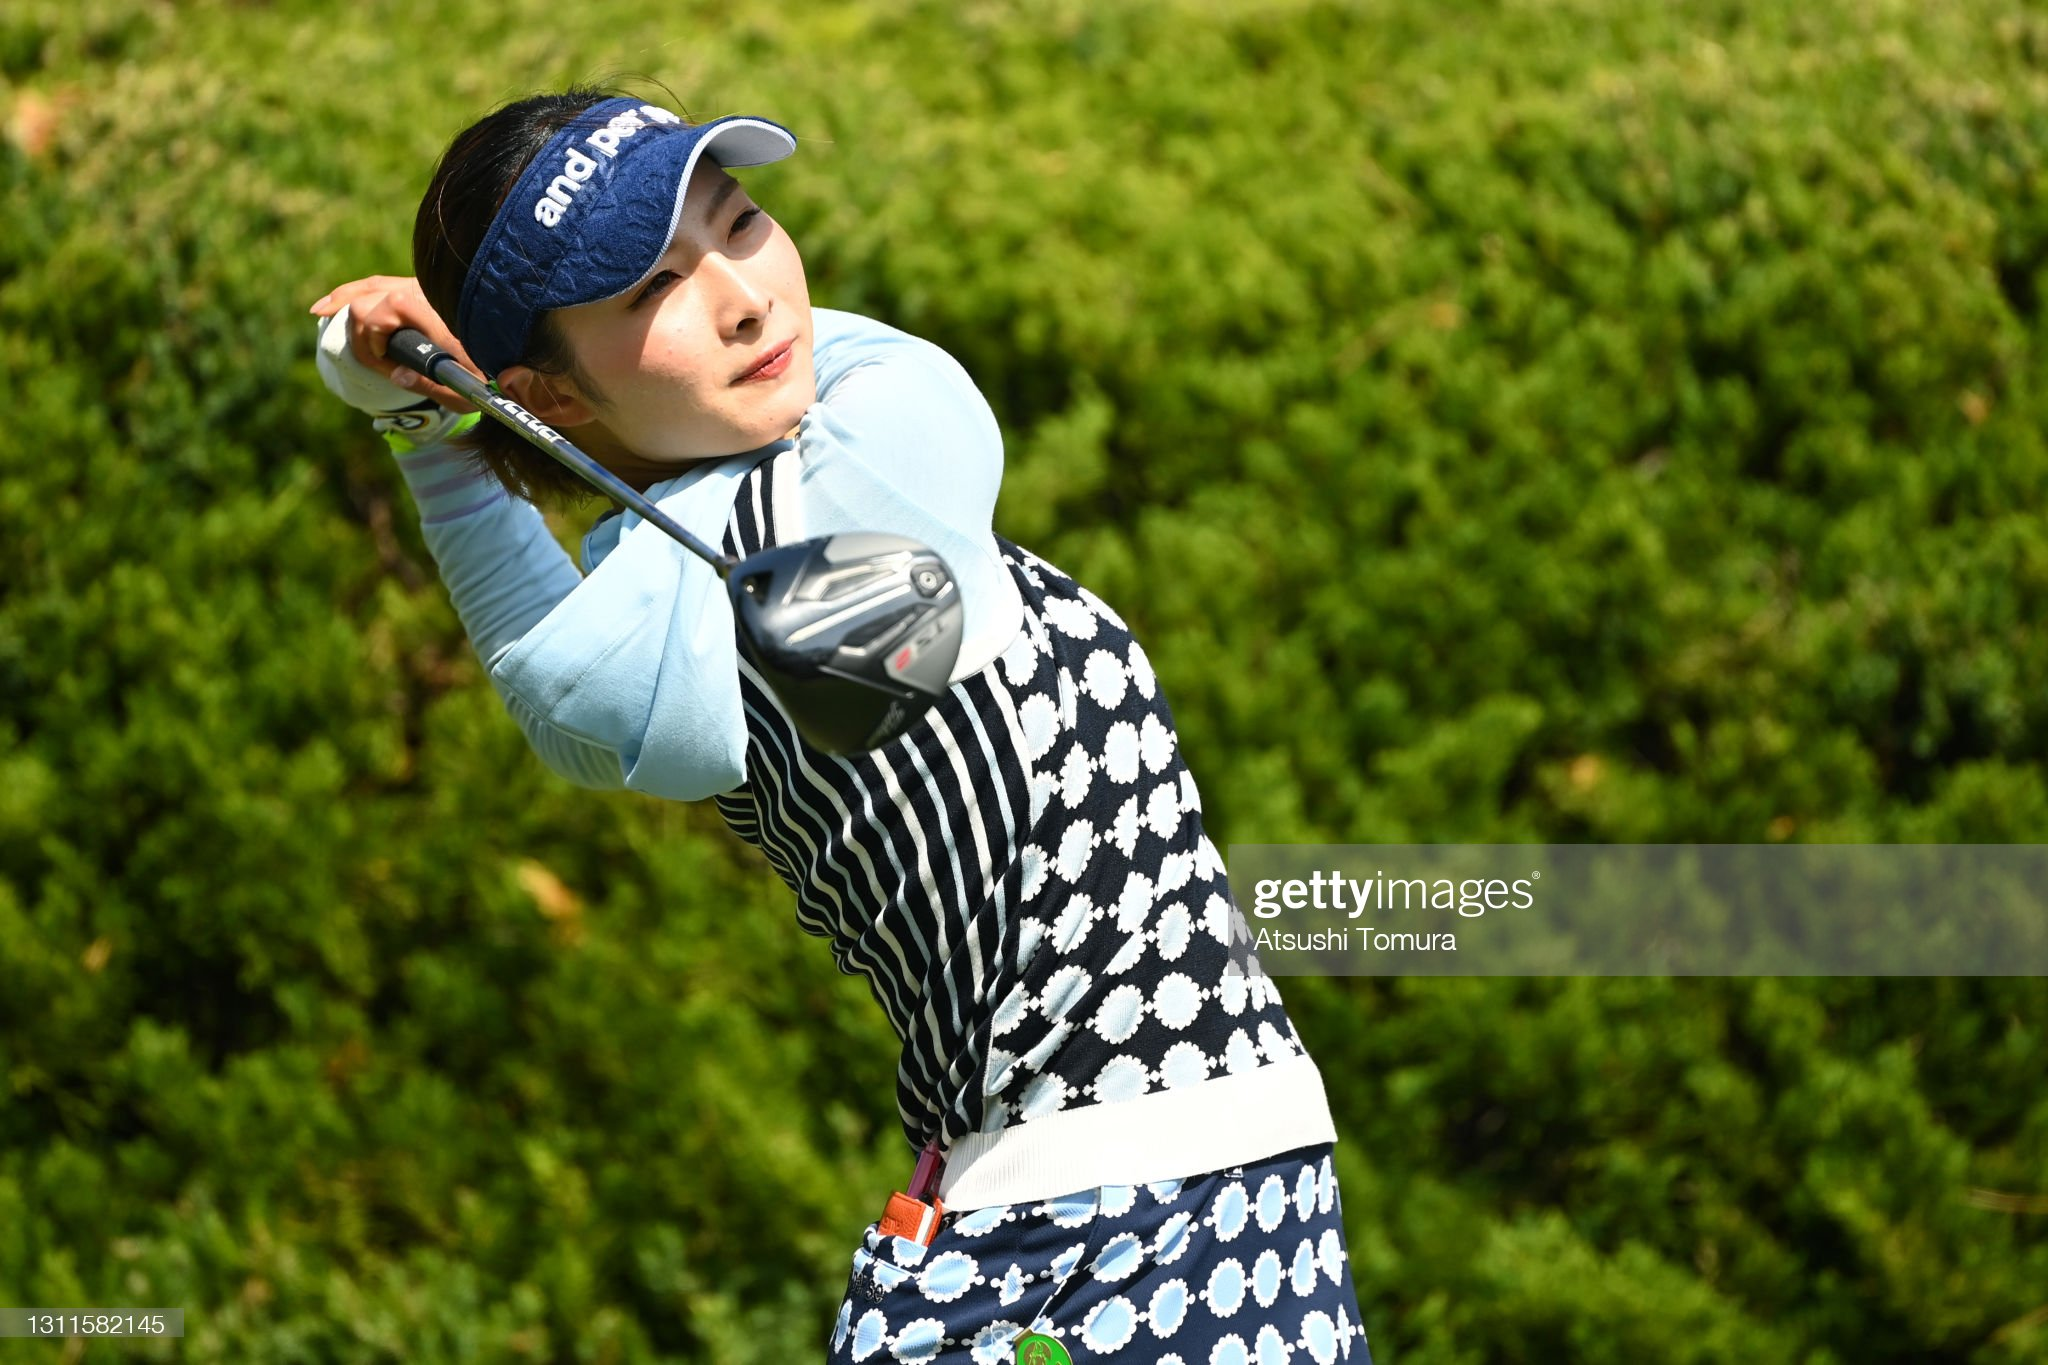 https://media.gettyimages.com/photos/karen-tsuruoka-of-japan-hits-her-tee-shot-on-the-2nd-hole-during-the-picture-id1311582145?s=2048x2048